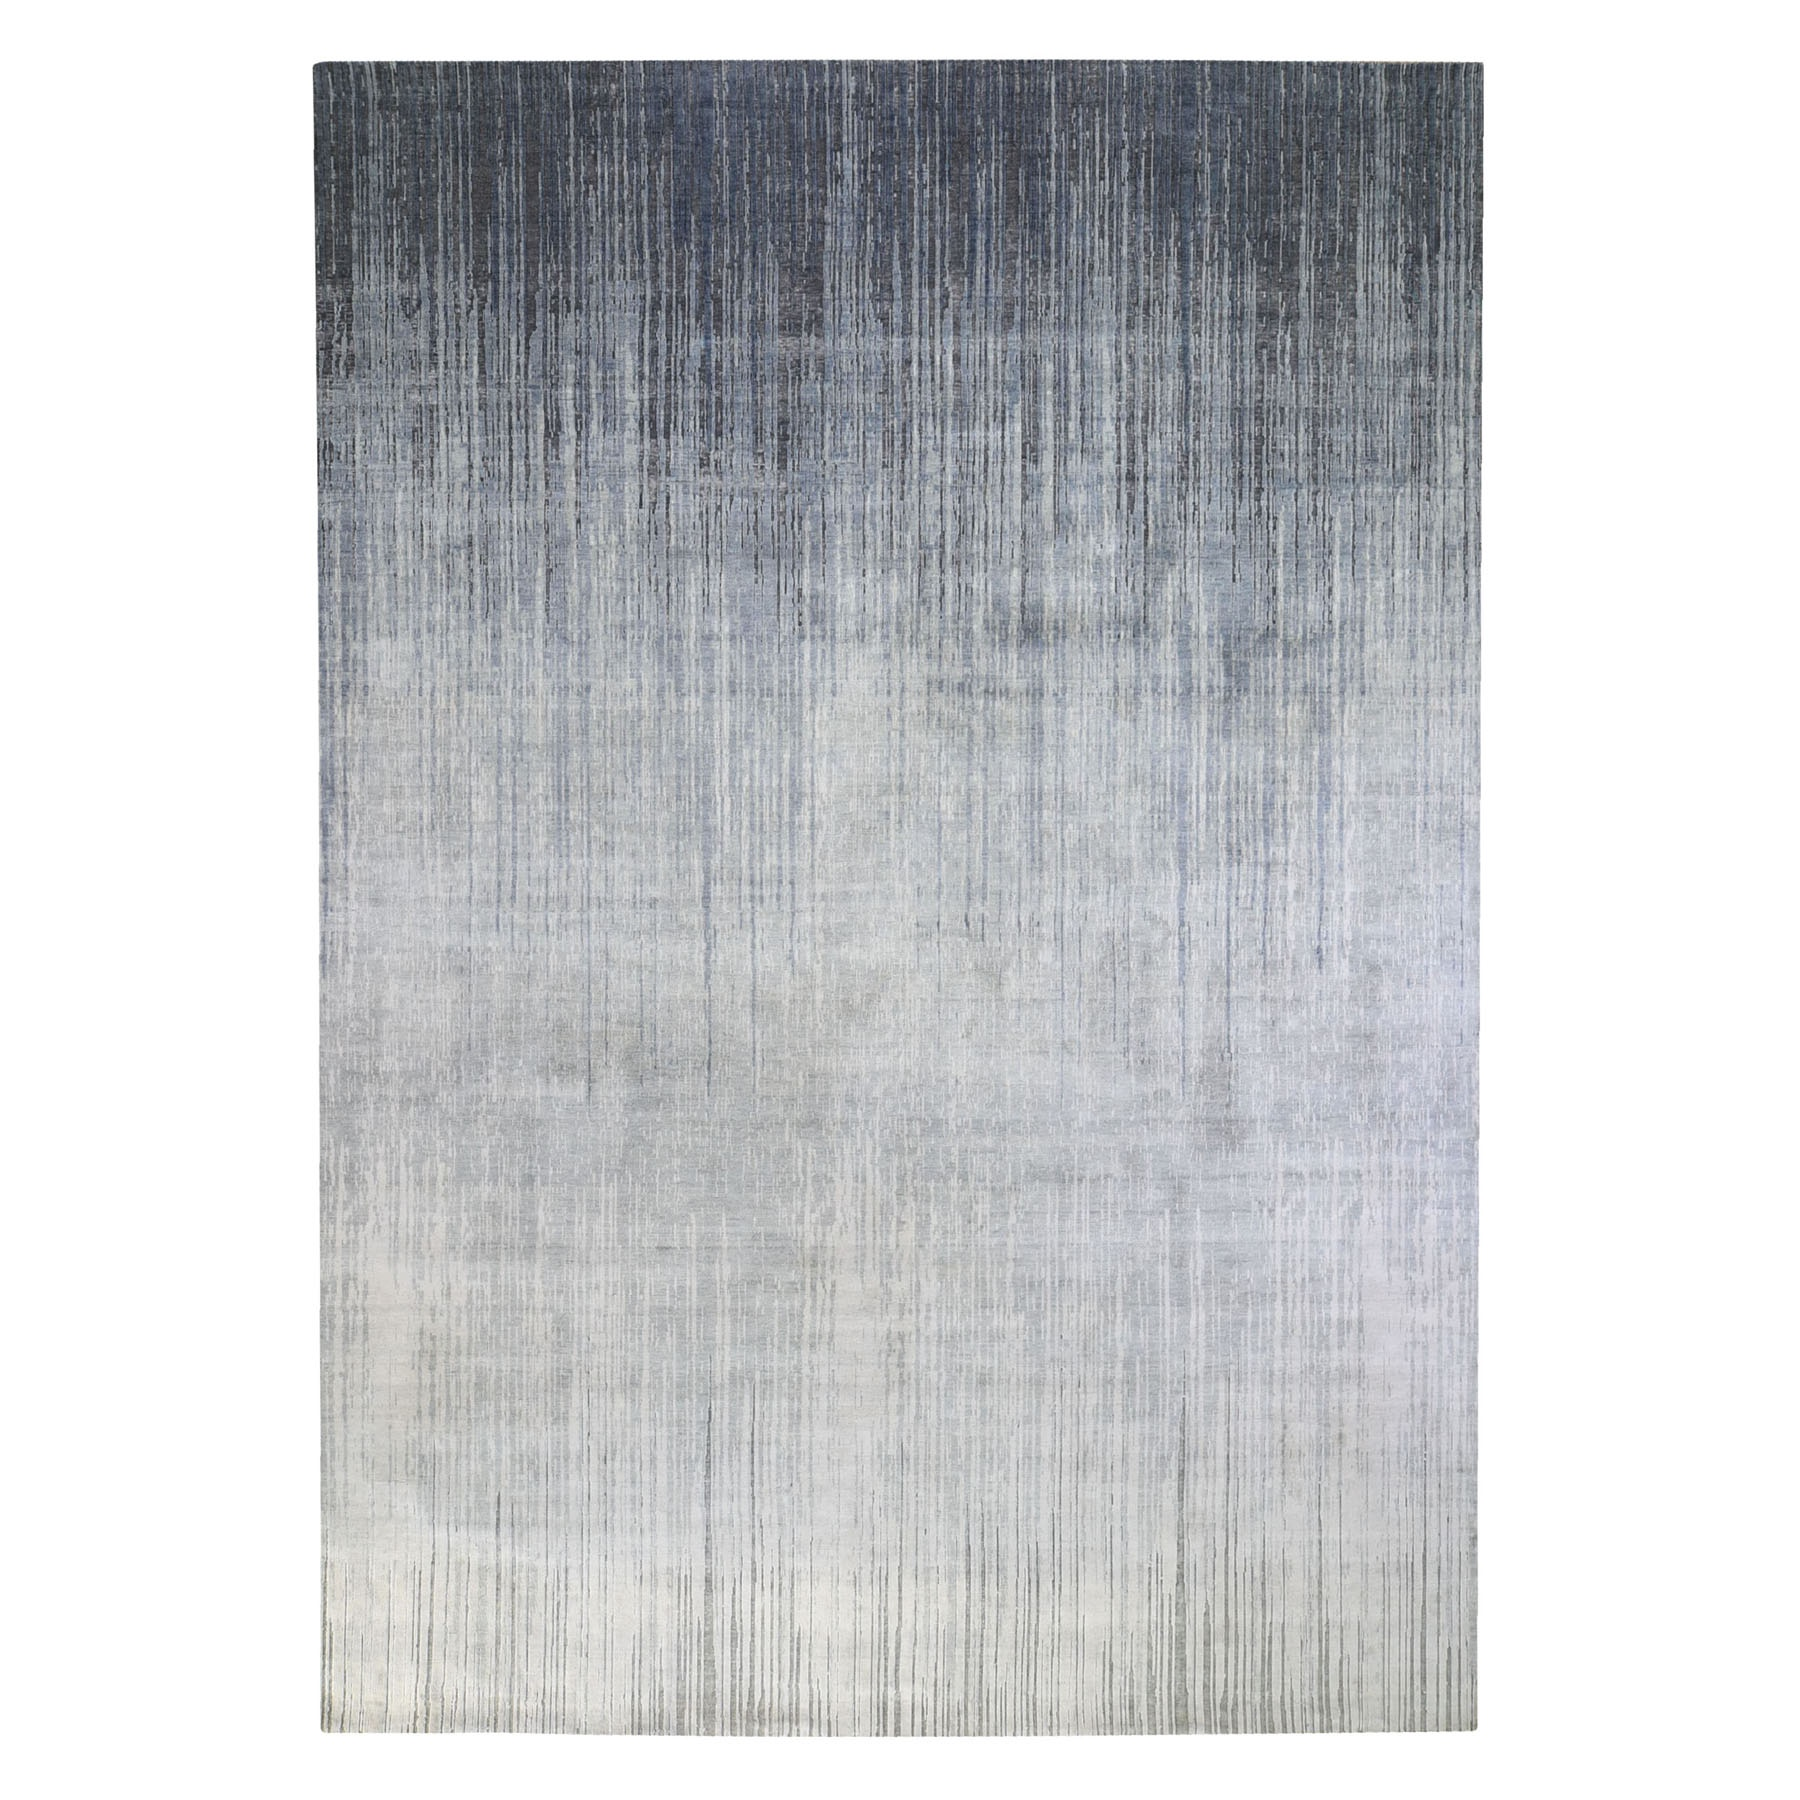 10'x14' Gray Ombre Design Pure Silk with Textured Wool Hand Knotted Oriental Rug